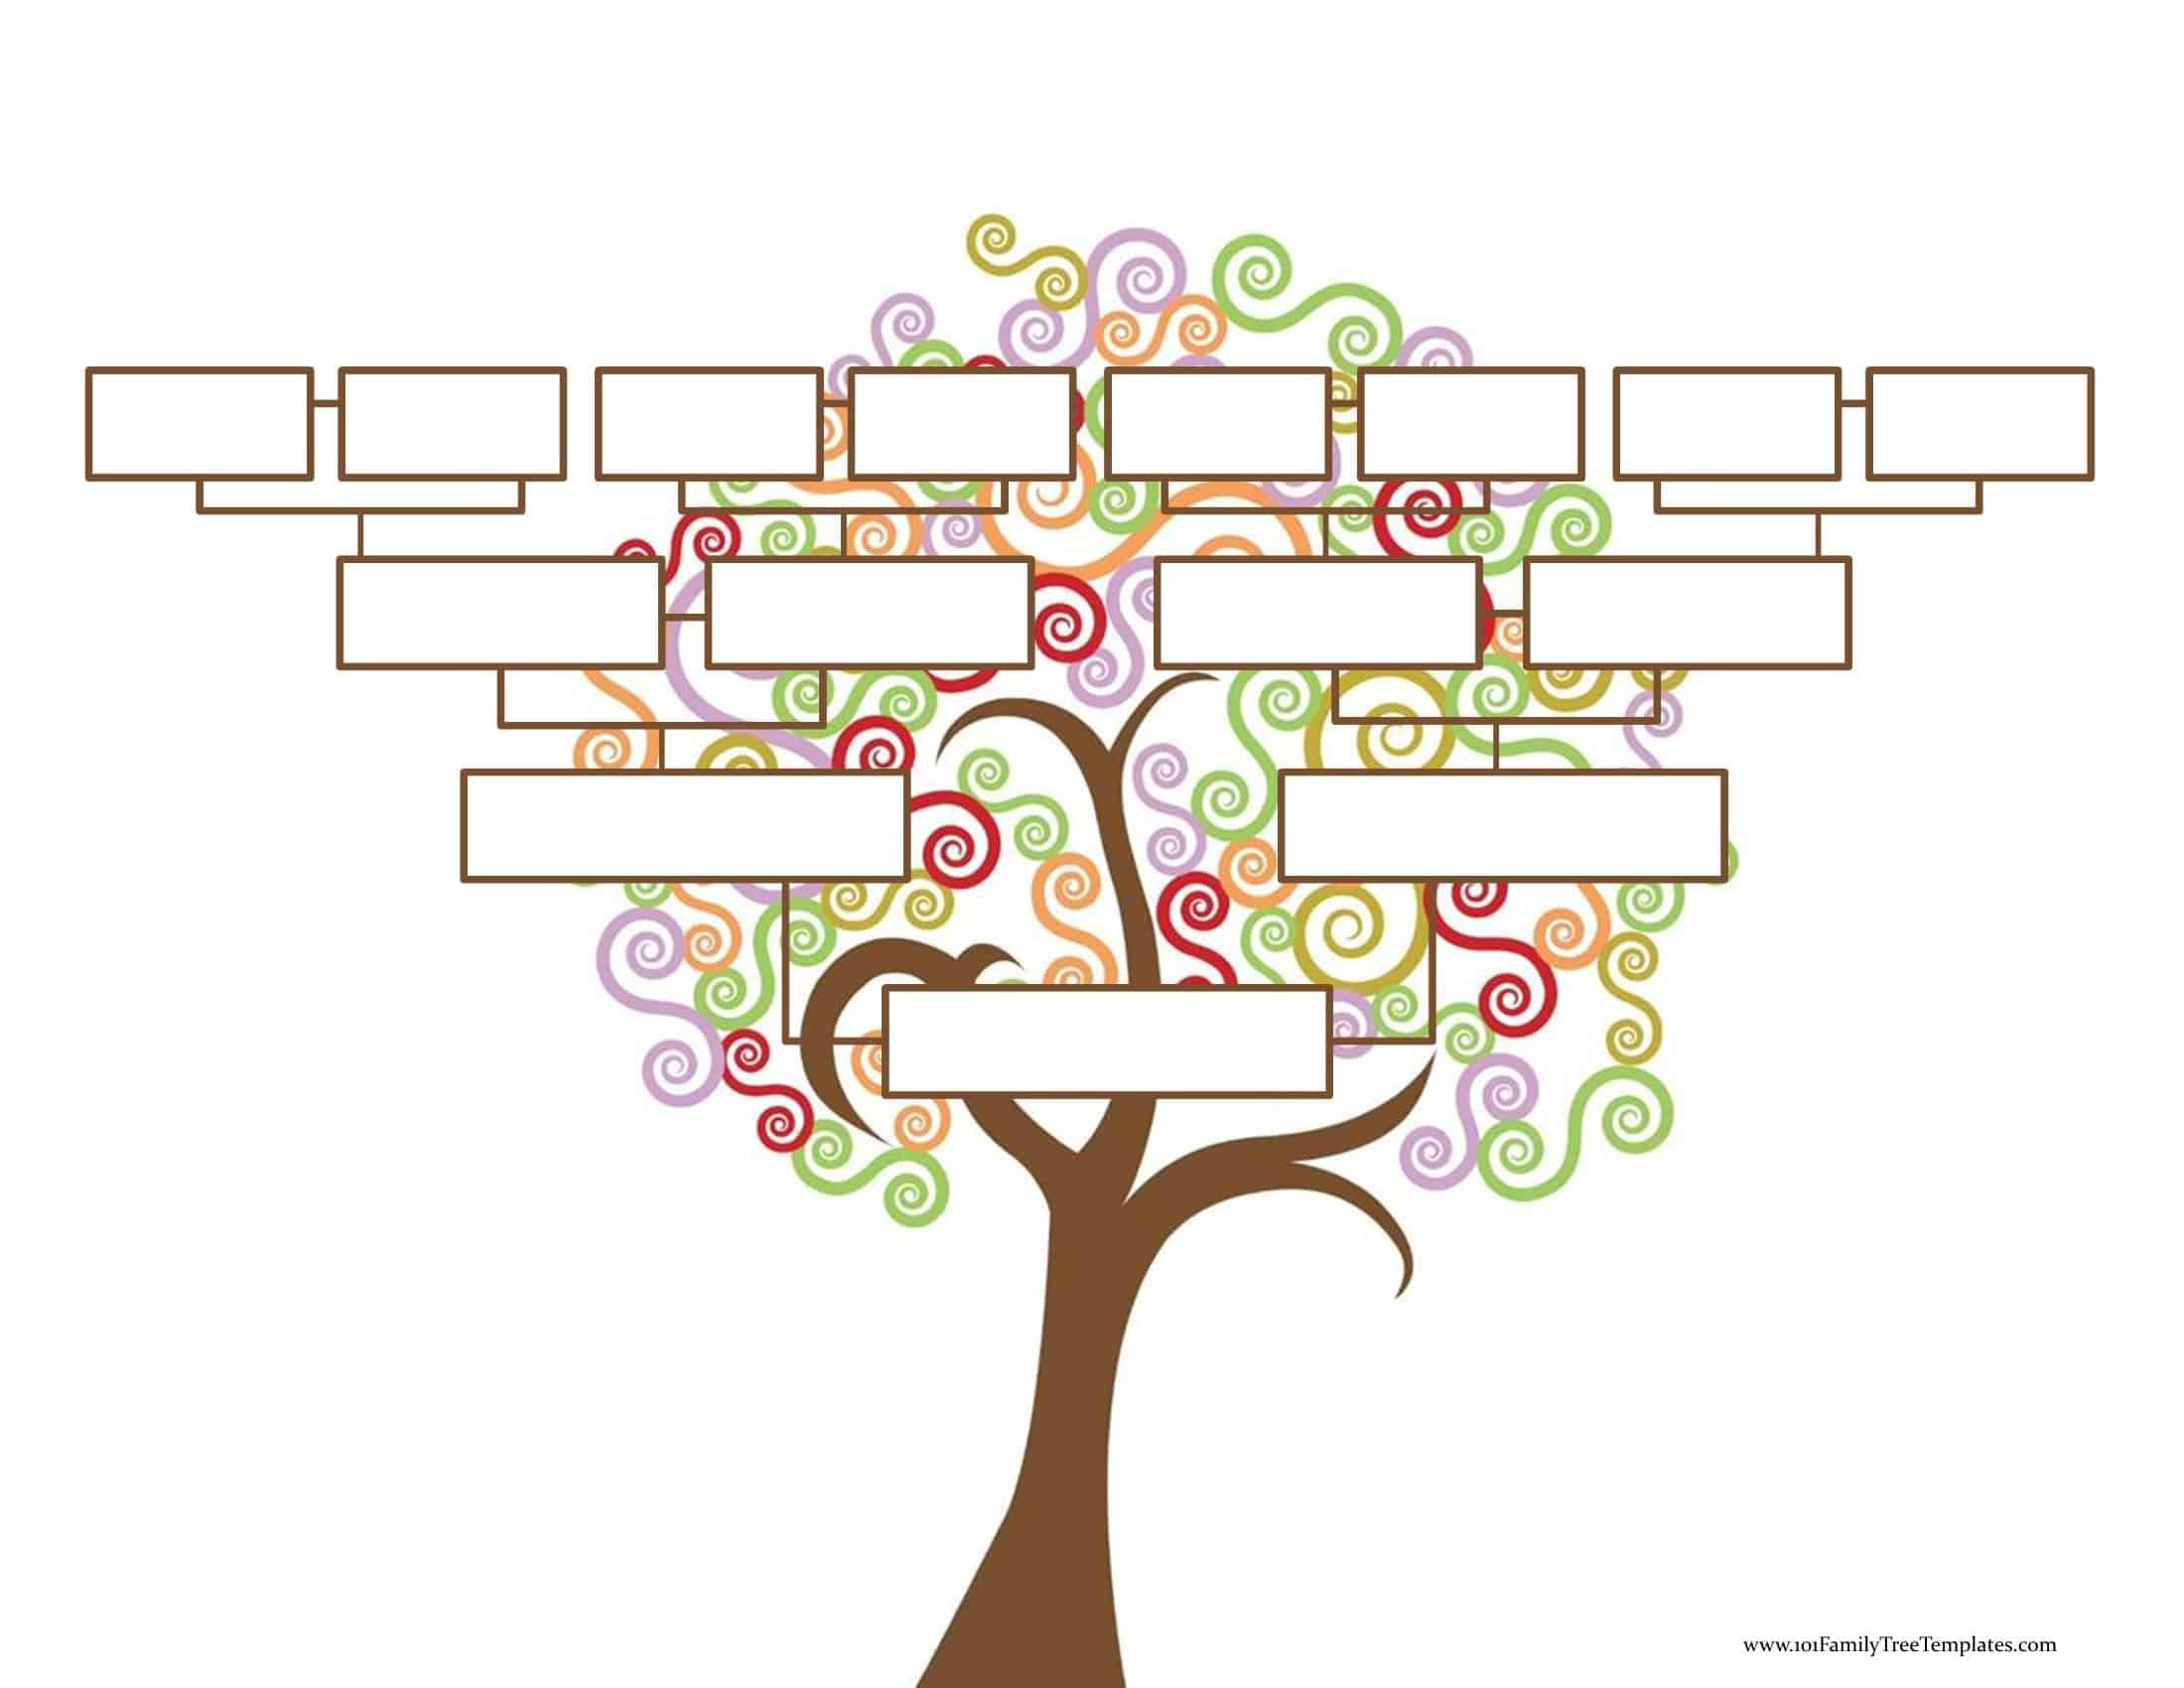 009 Unforgettable Free Editable Family Tree Template Image  Templates Pdf Powerpoint With PhotoFull